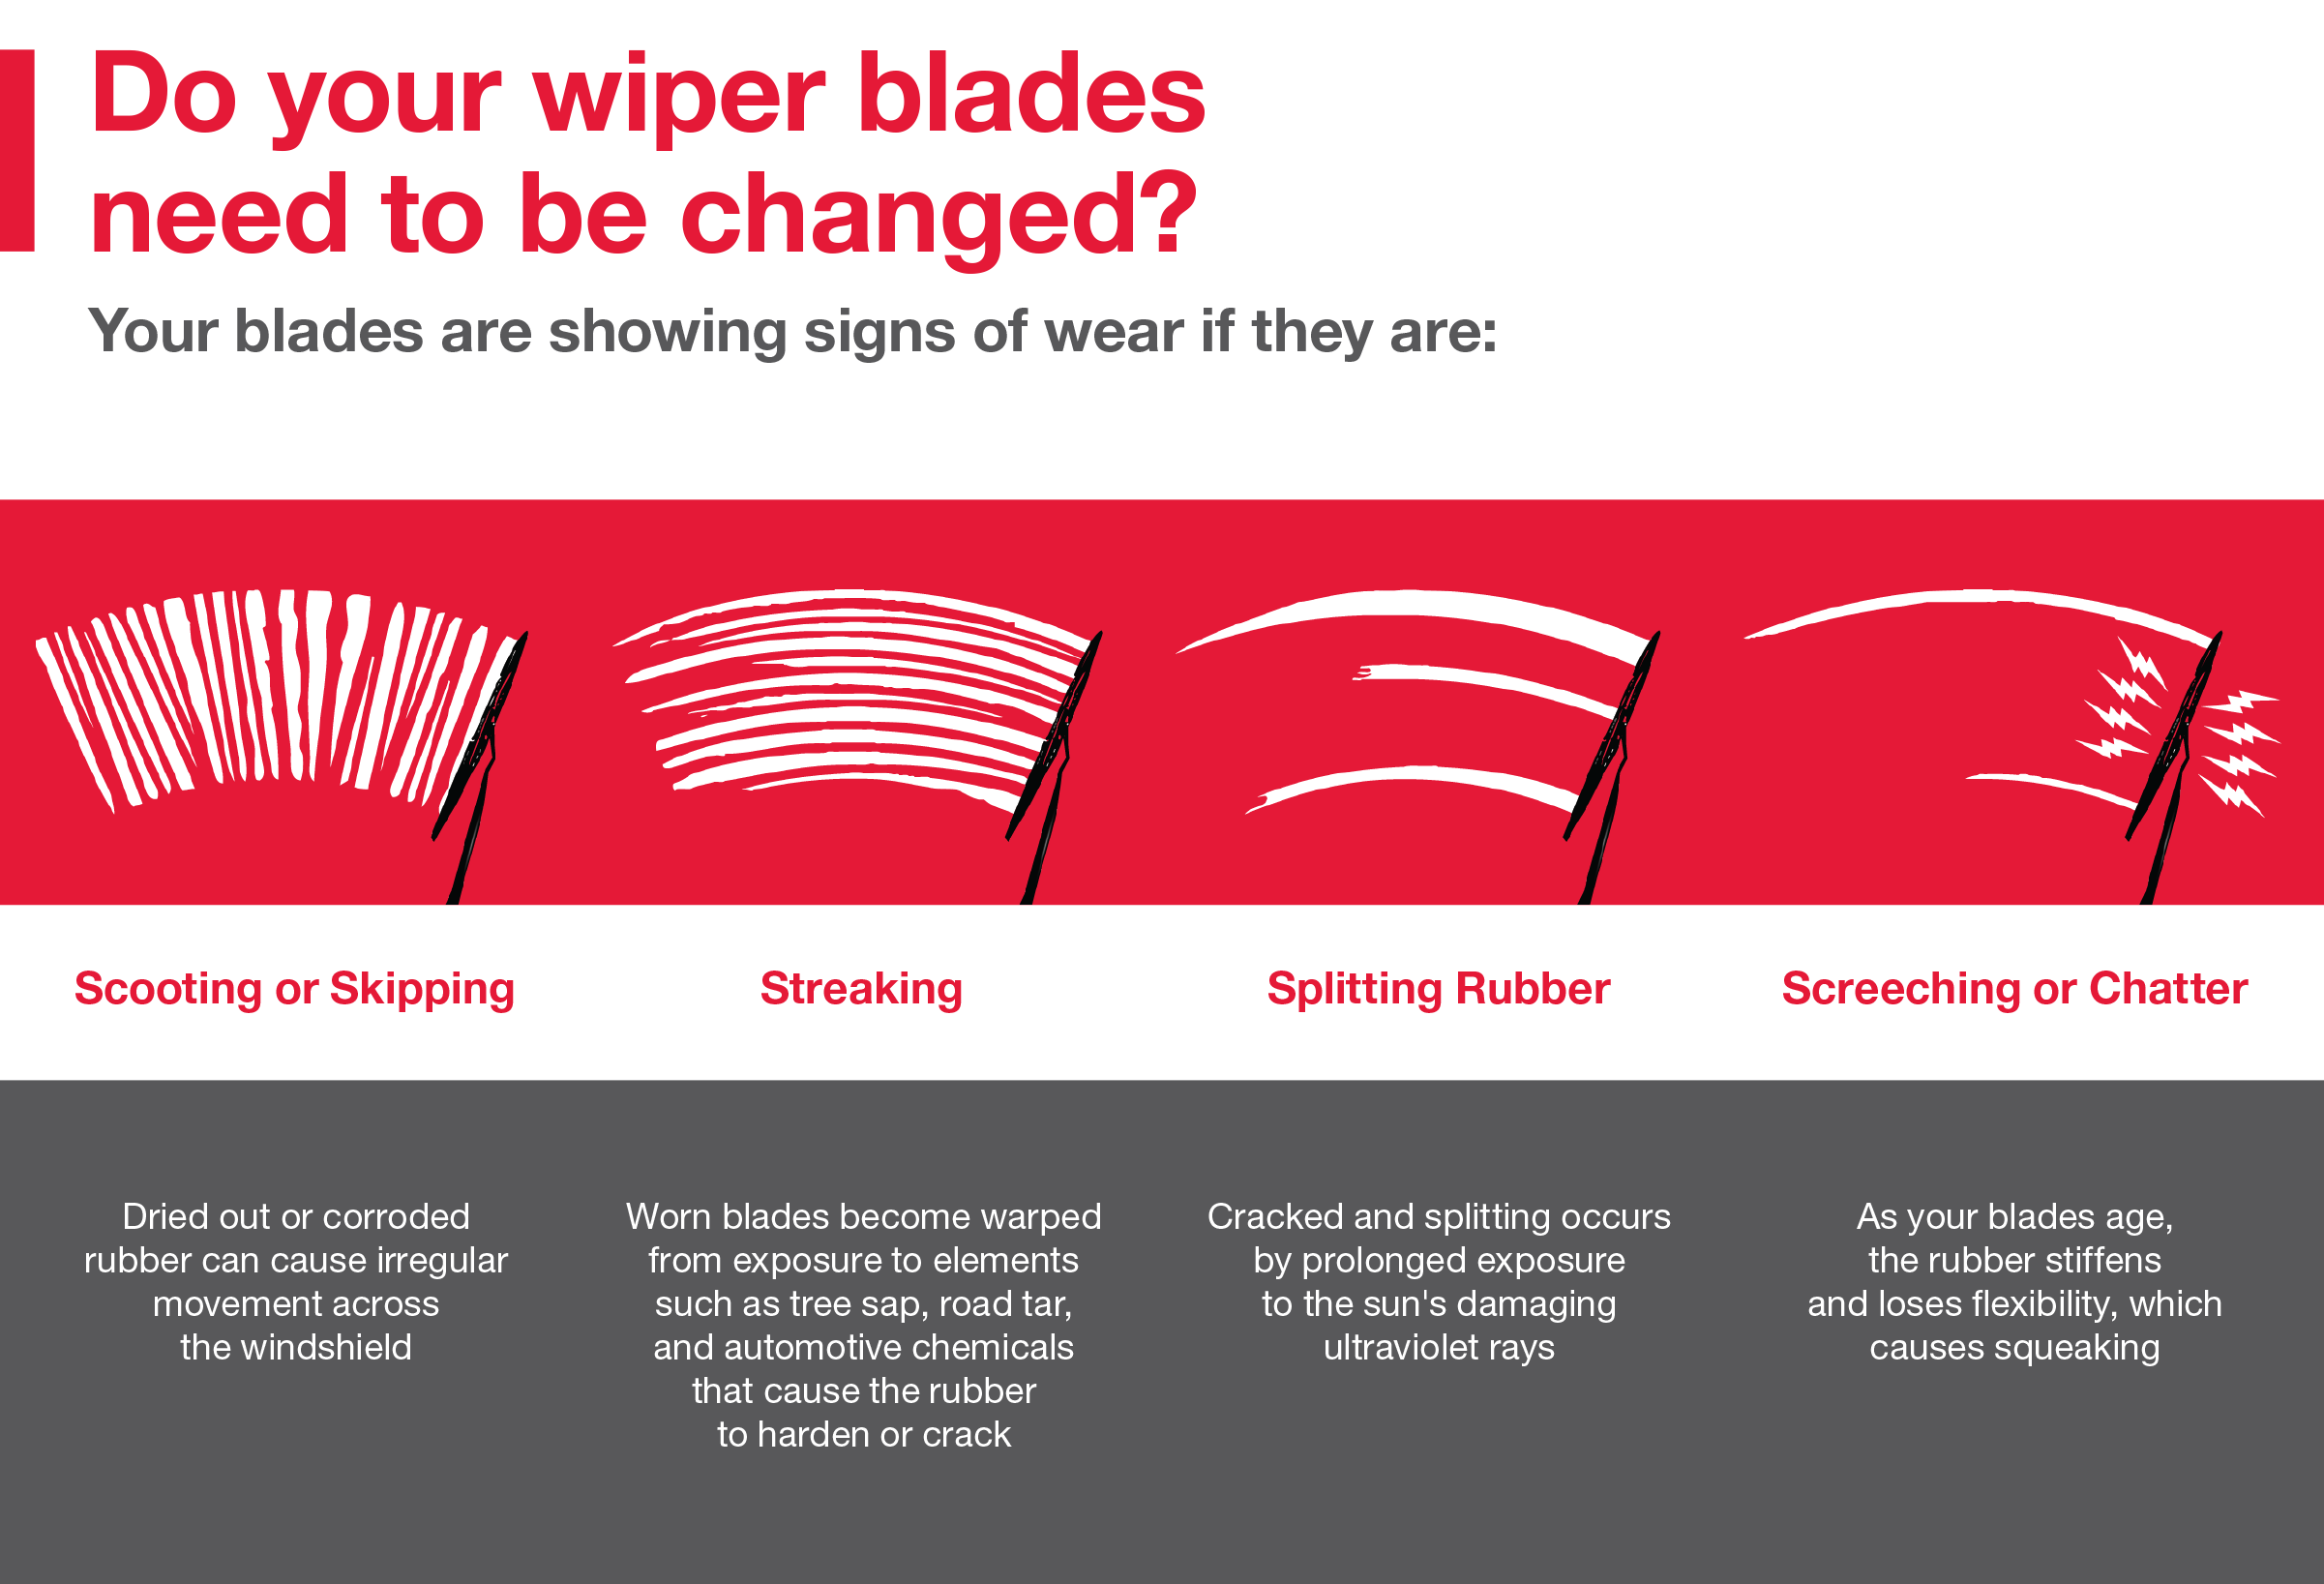 Do your wiper blades need to be changed? Call your local dealer for more info: (888) 258-8444